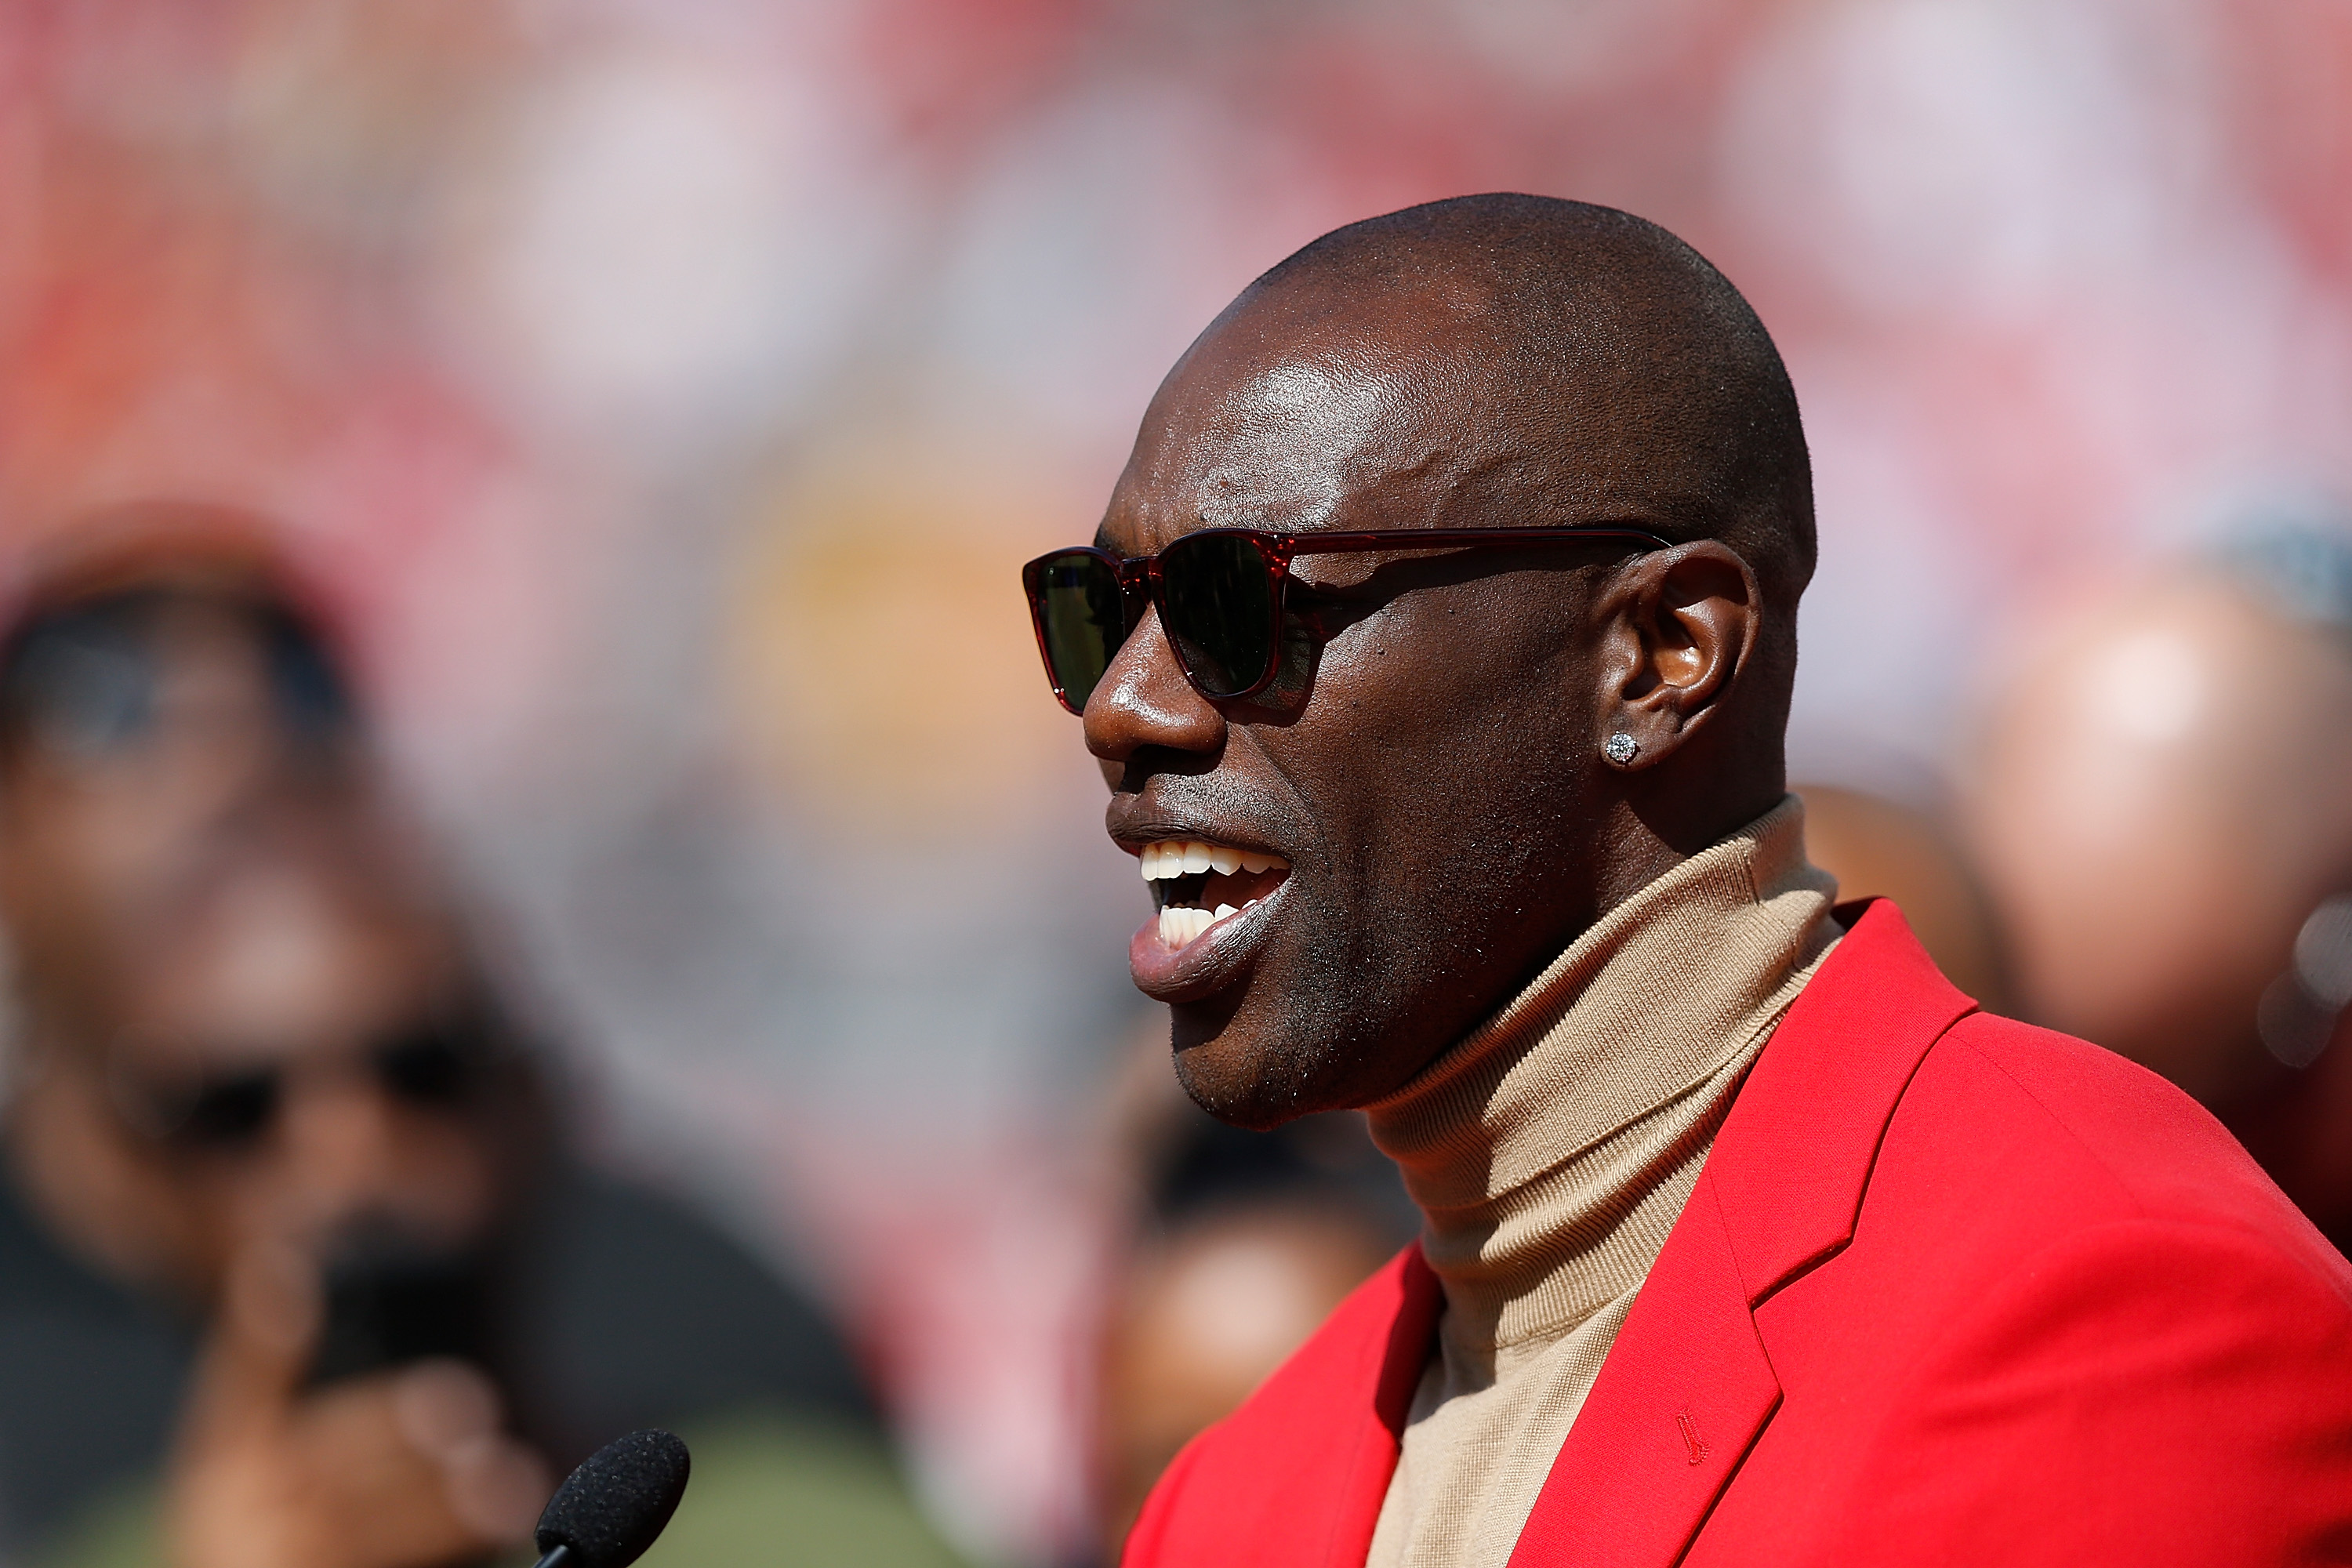 NFL legend Terrell Owens tried playing and owning an Indoor Football League team in 2012. Owens lost both over a perceived 'lack of effort.'